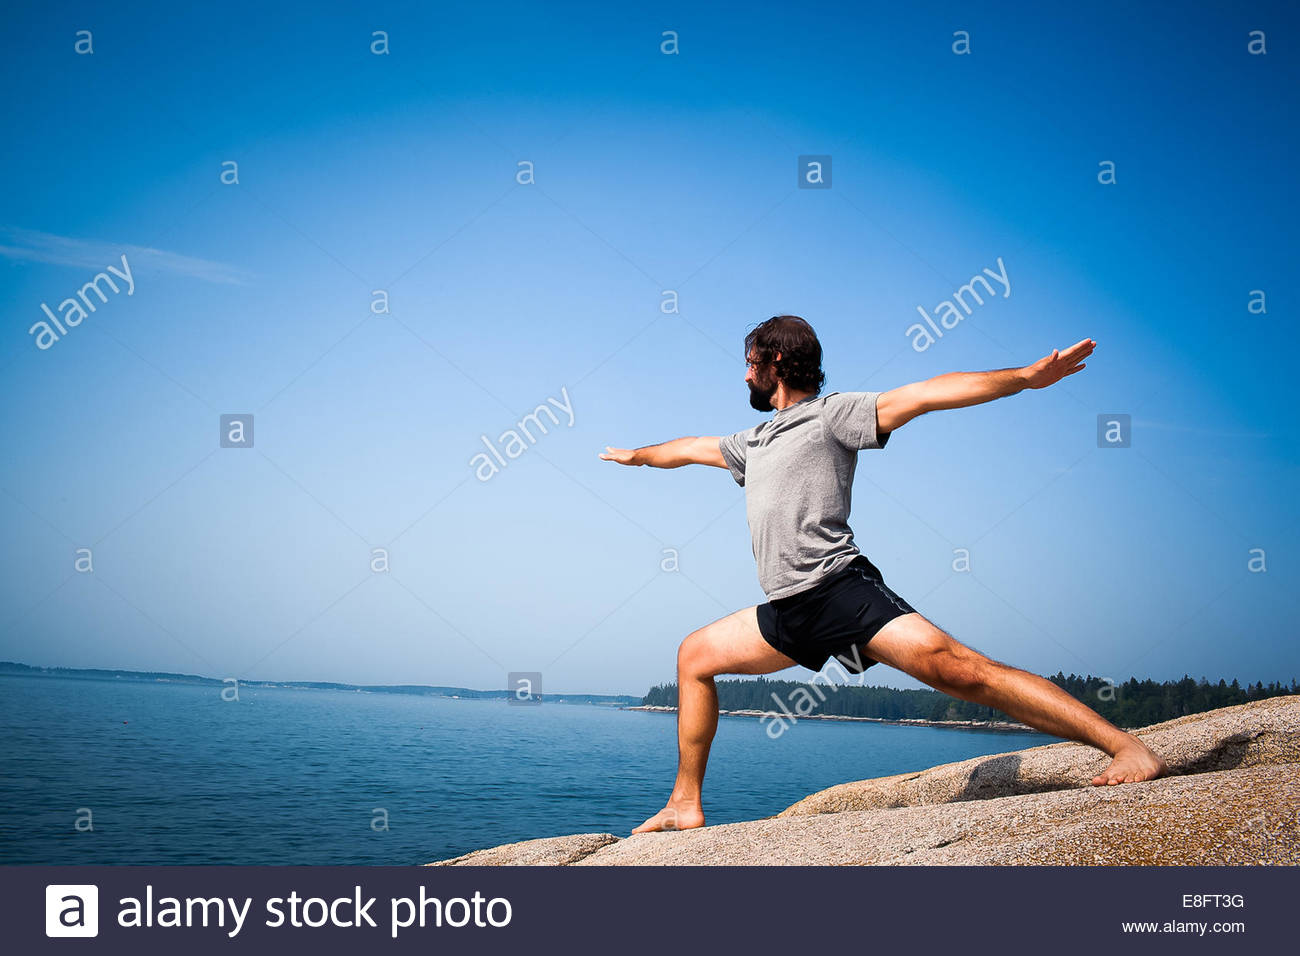 Man doing warrior yoga pose on beach, Maine, America, USA - Stock Image